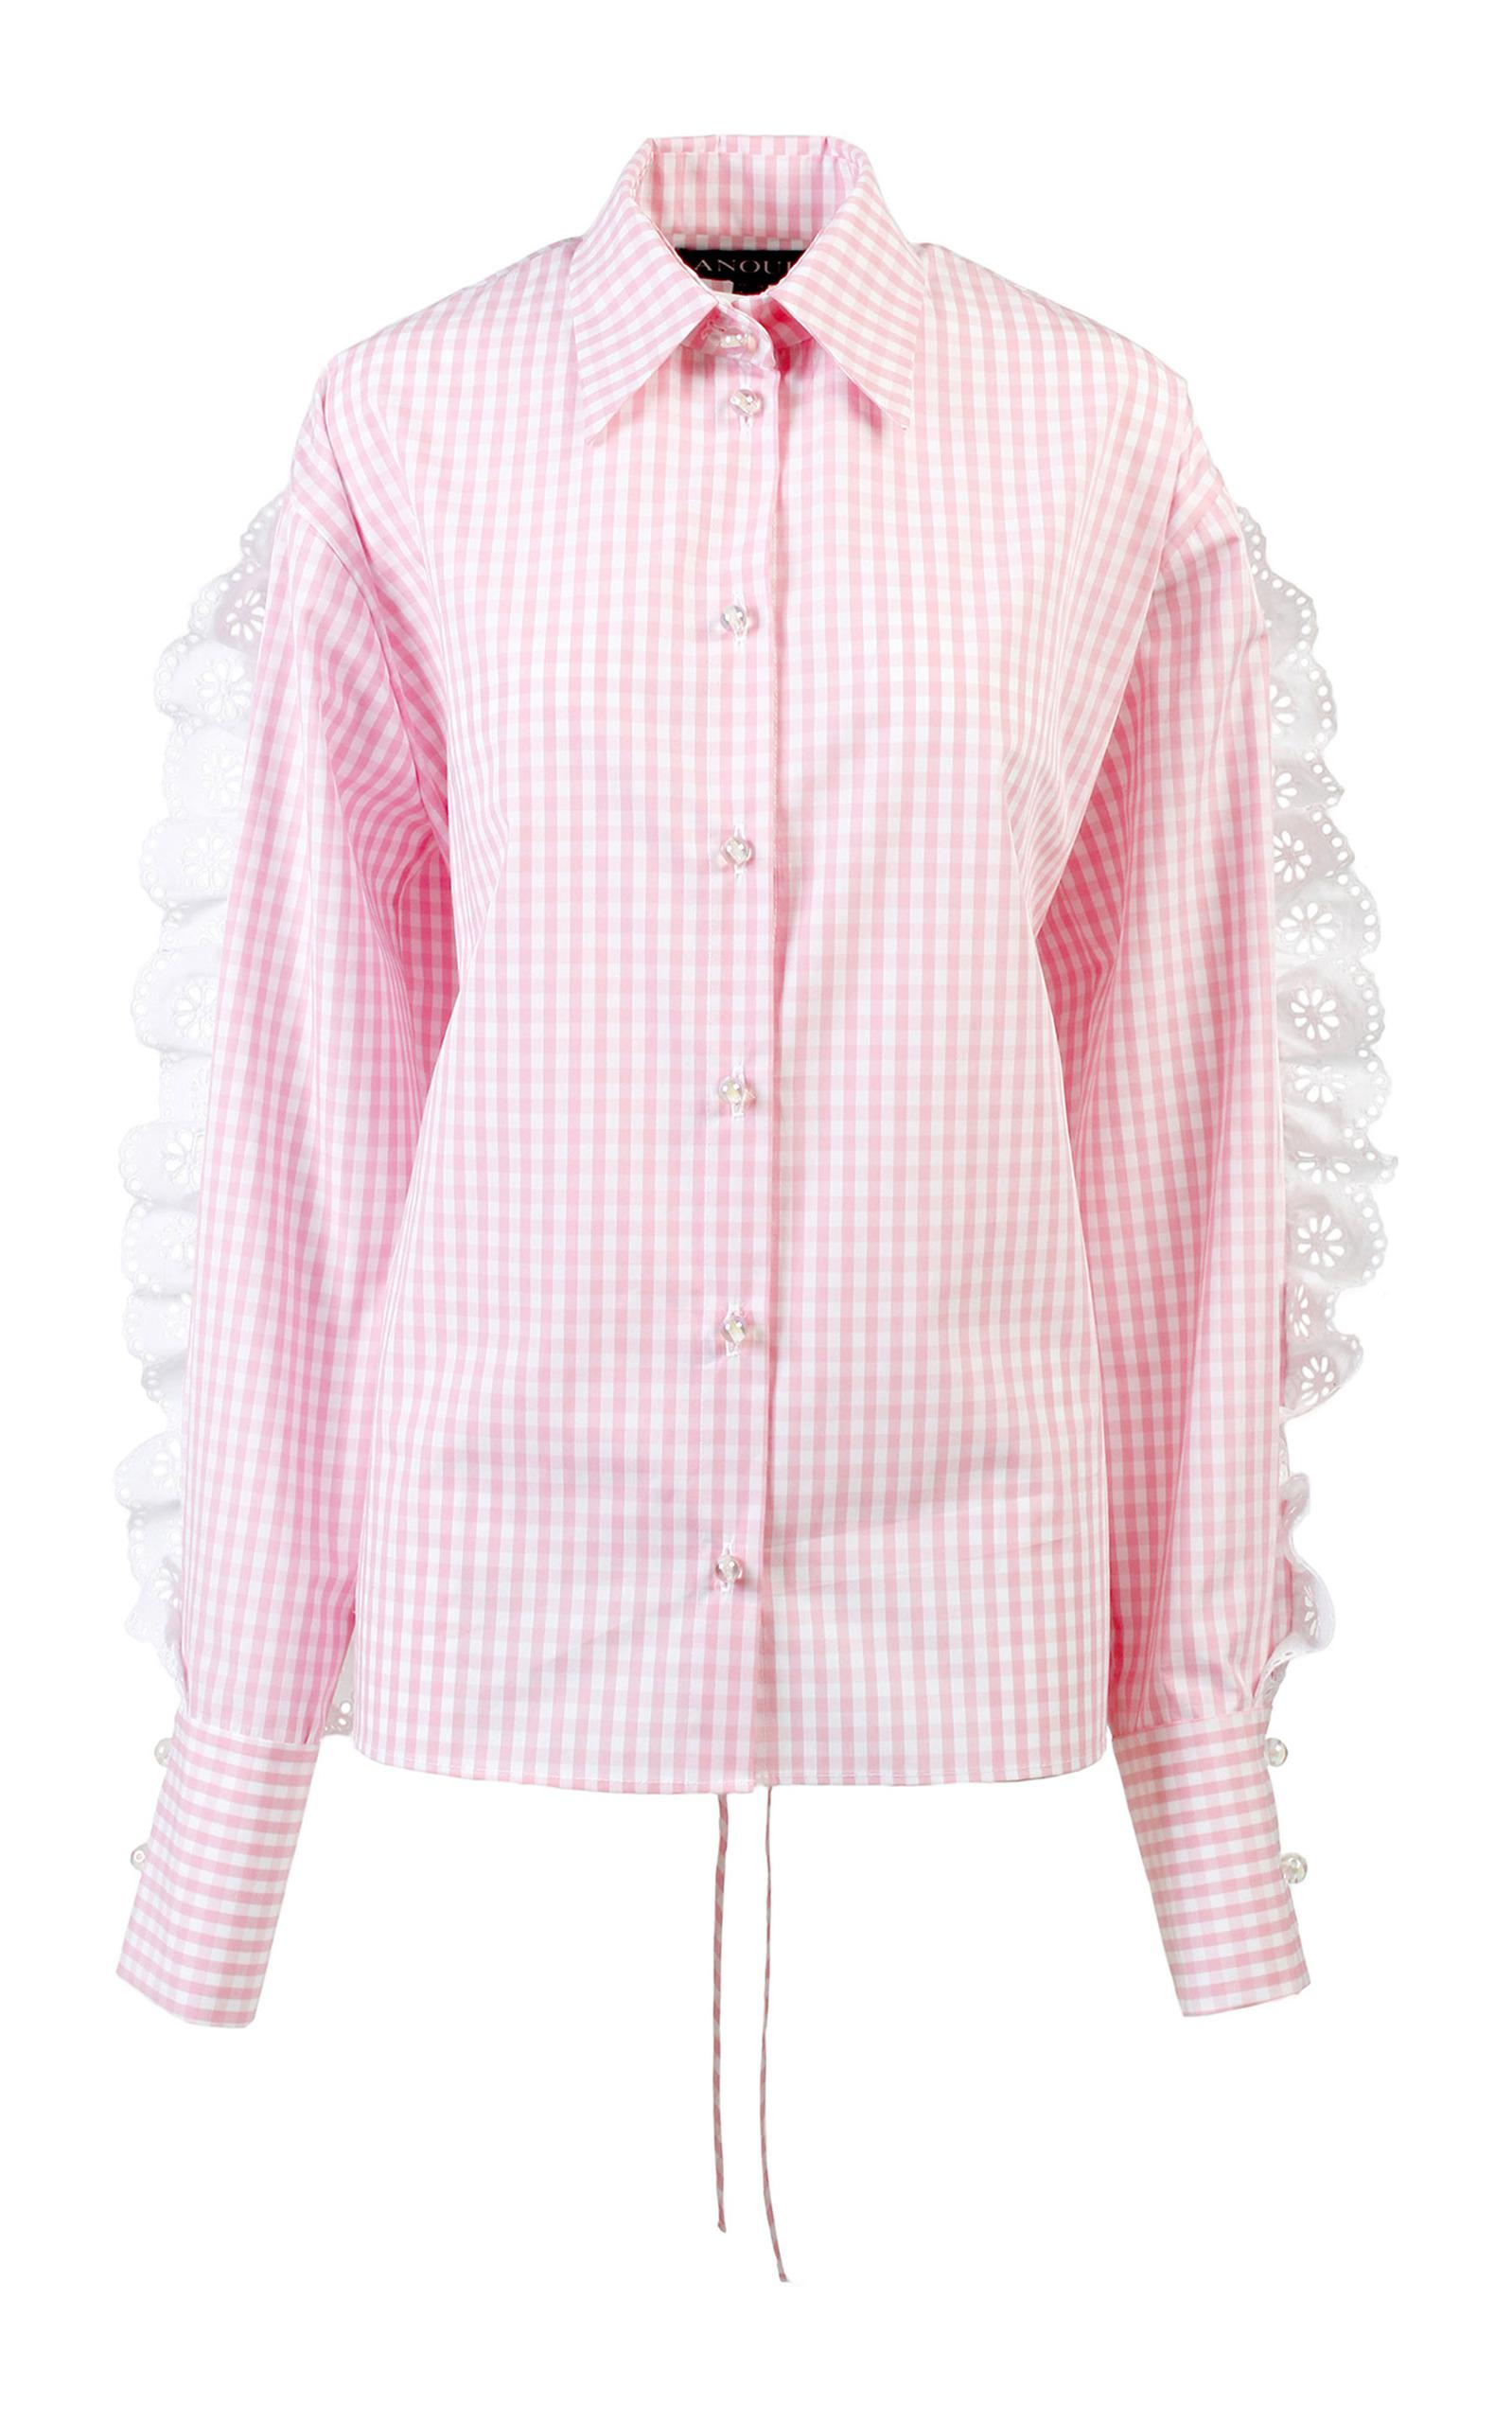 be7da655d0015 Lyst - Anouki Pink   White Check Shirt in Pink